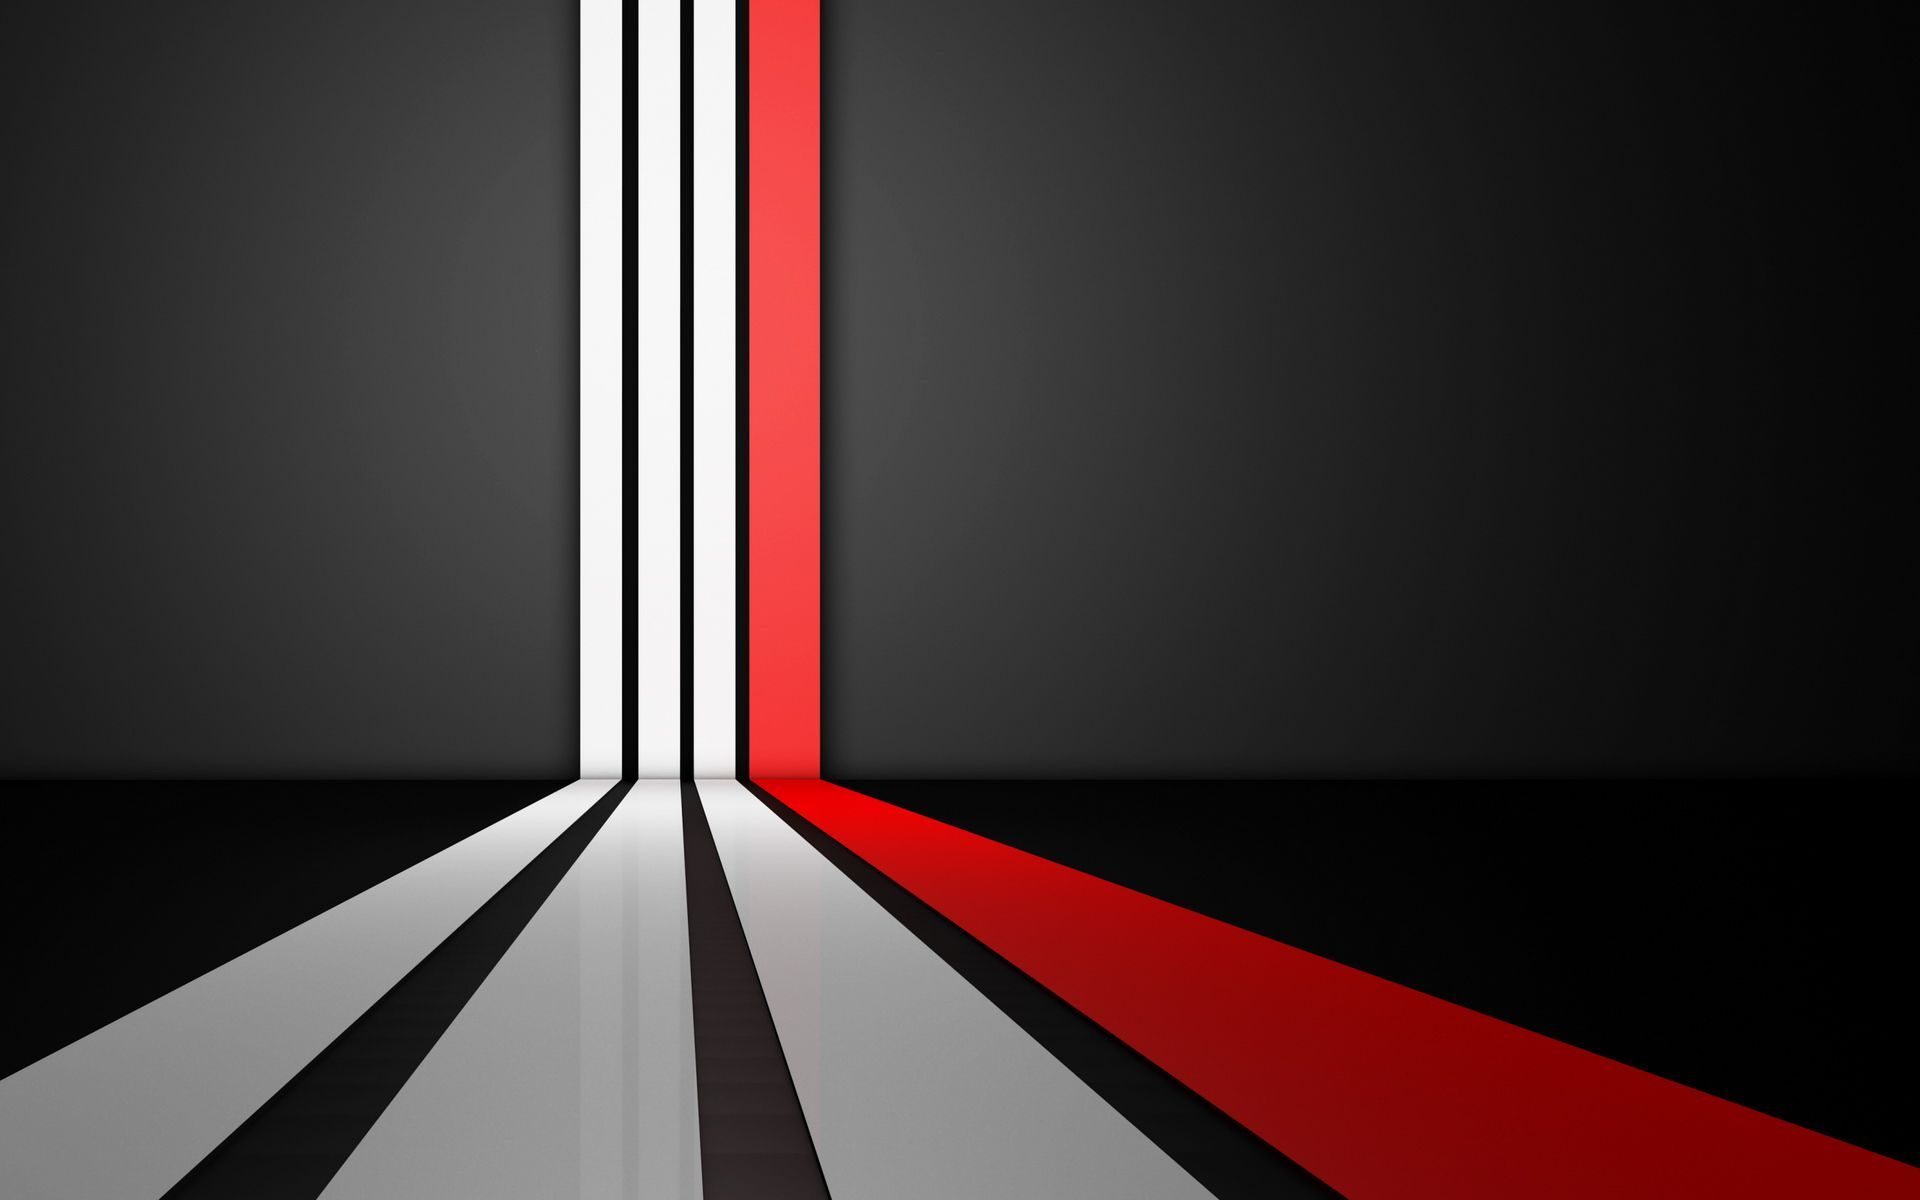 Hd wallpaper red and black - Red White And Black Backgrounds 2 Cool Hd Wallpaper